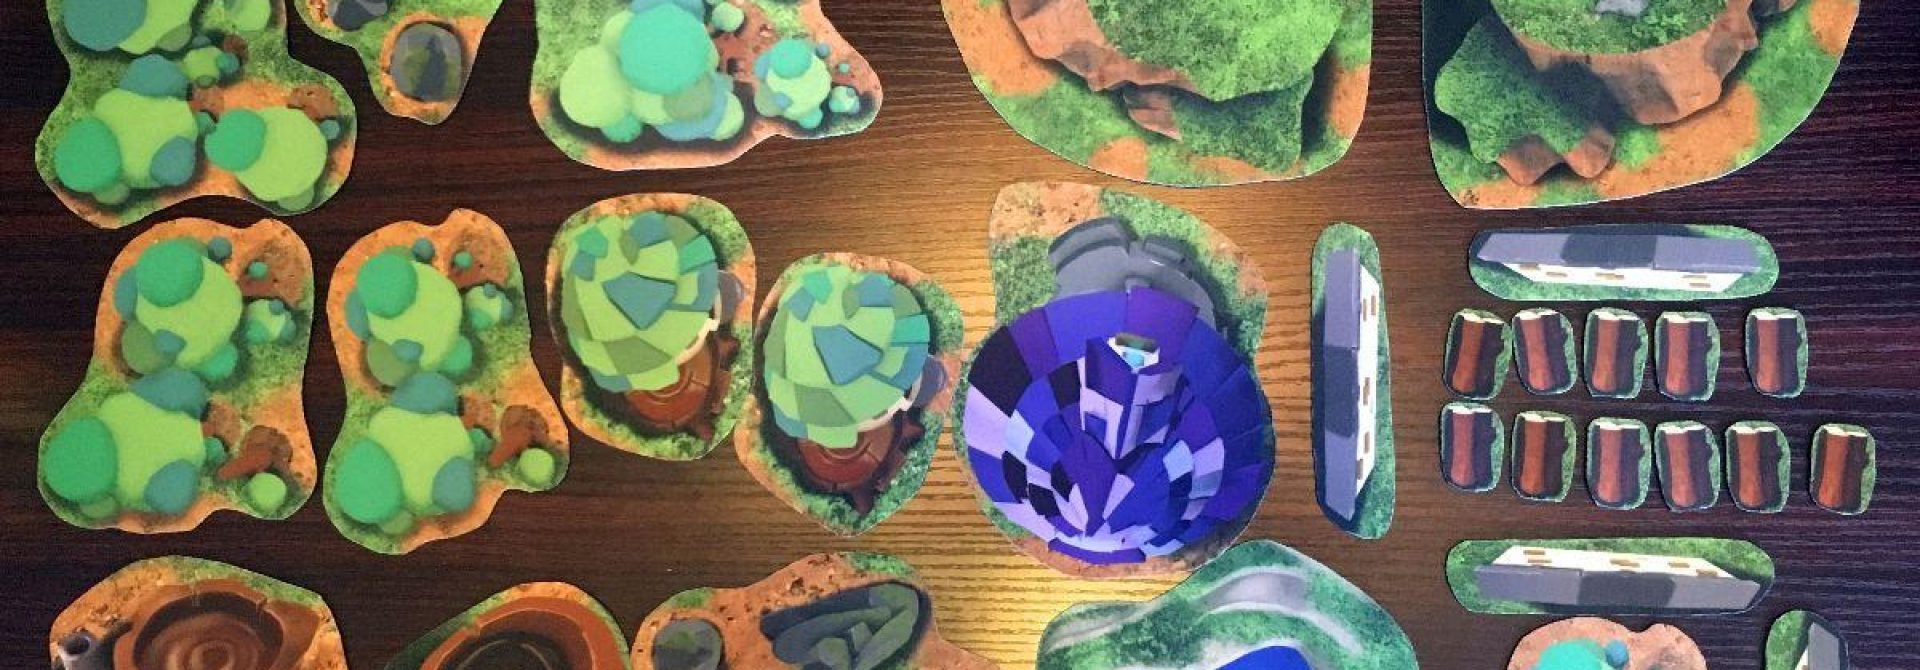 For Those About To Roll, We Salute You! Dicey Ventures Earth and Arcane 2D Neoprene Terrain Review